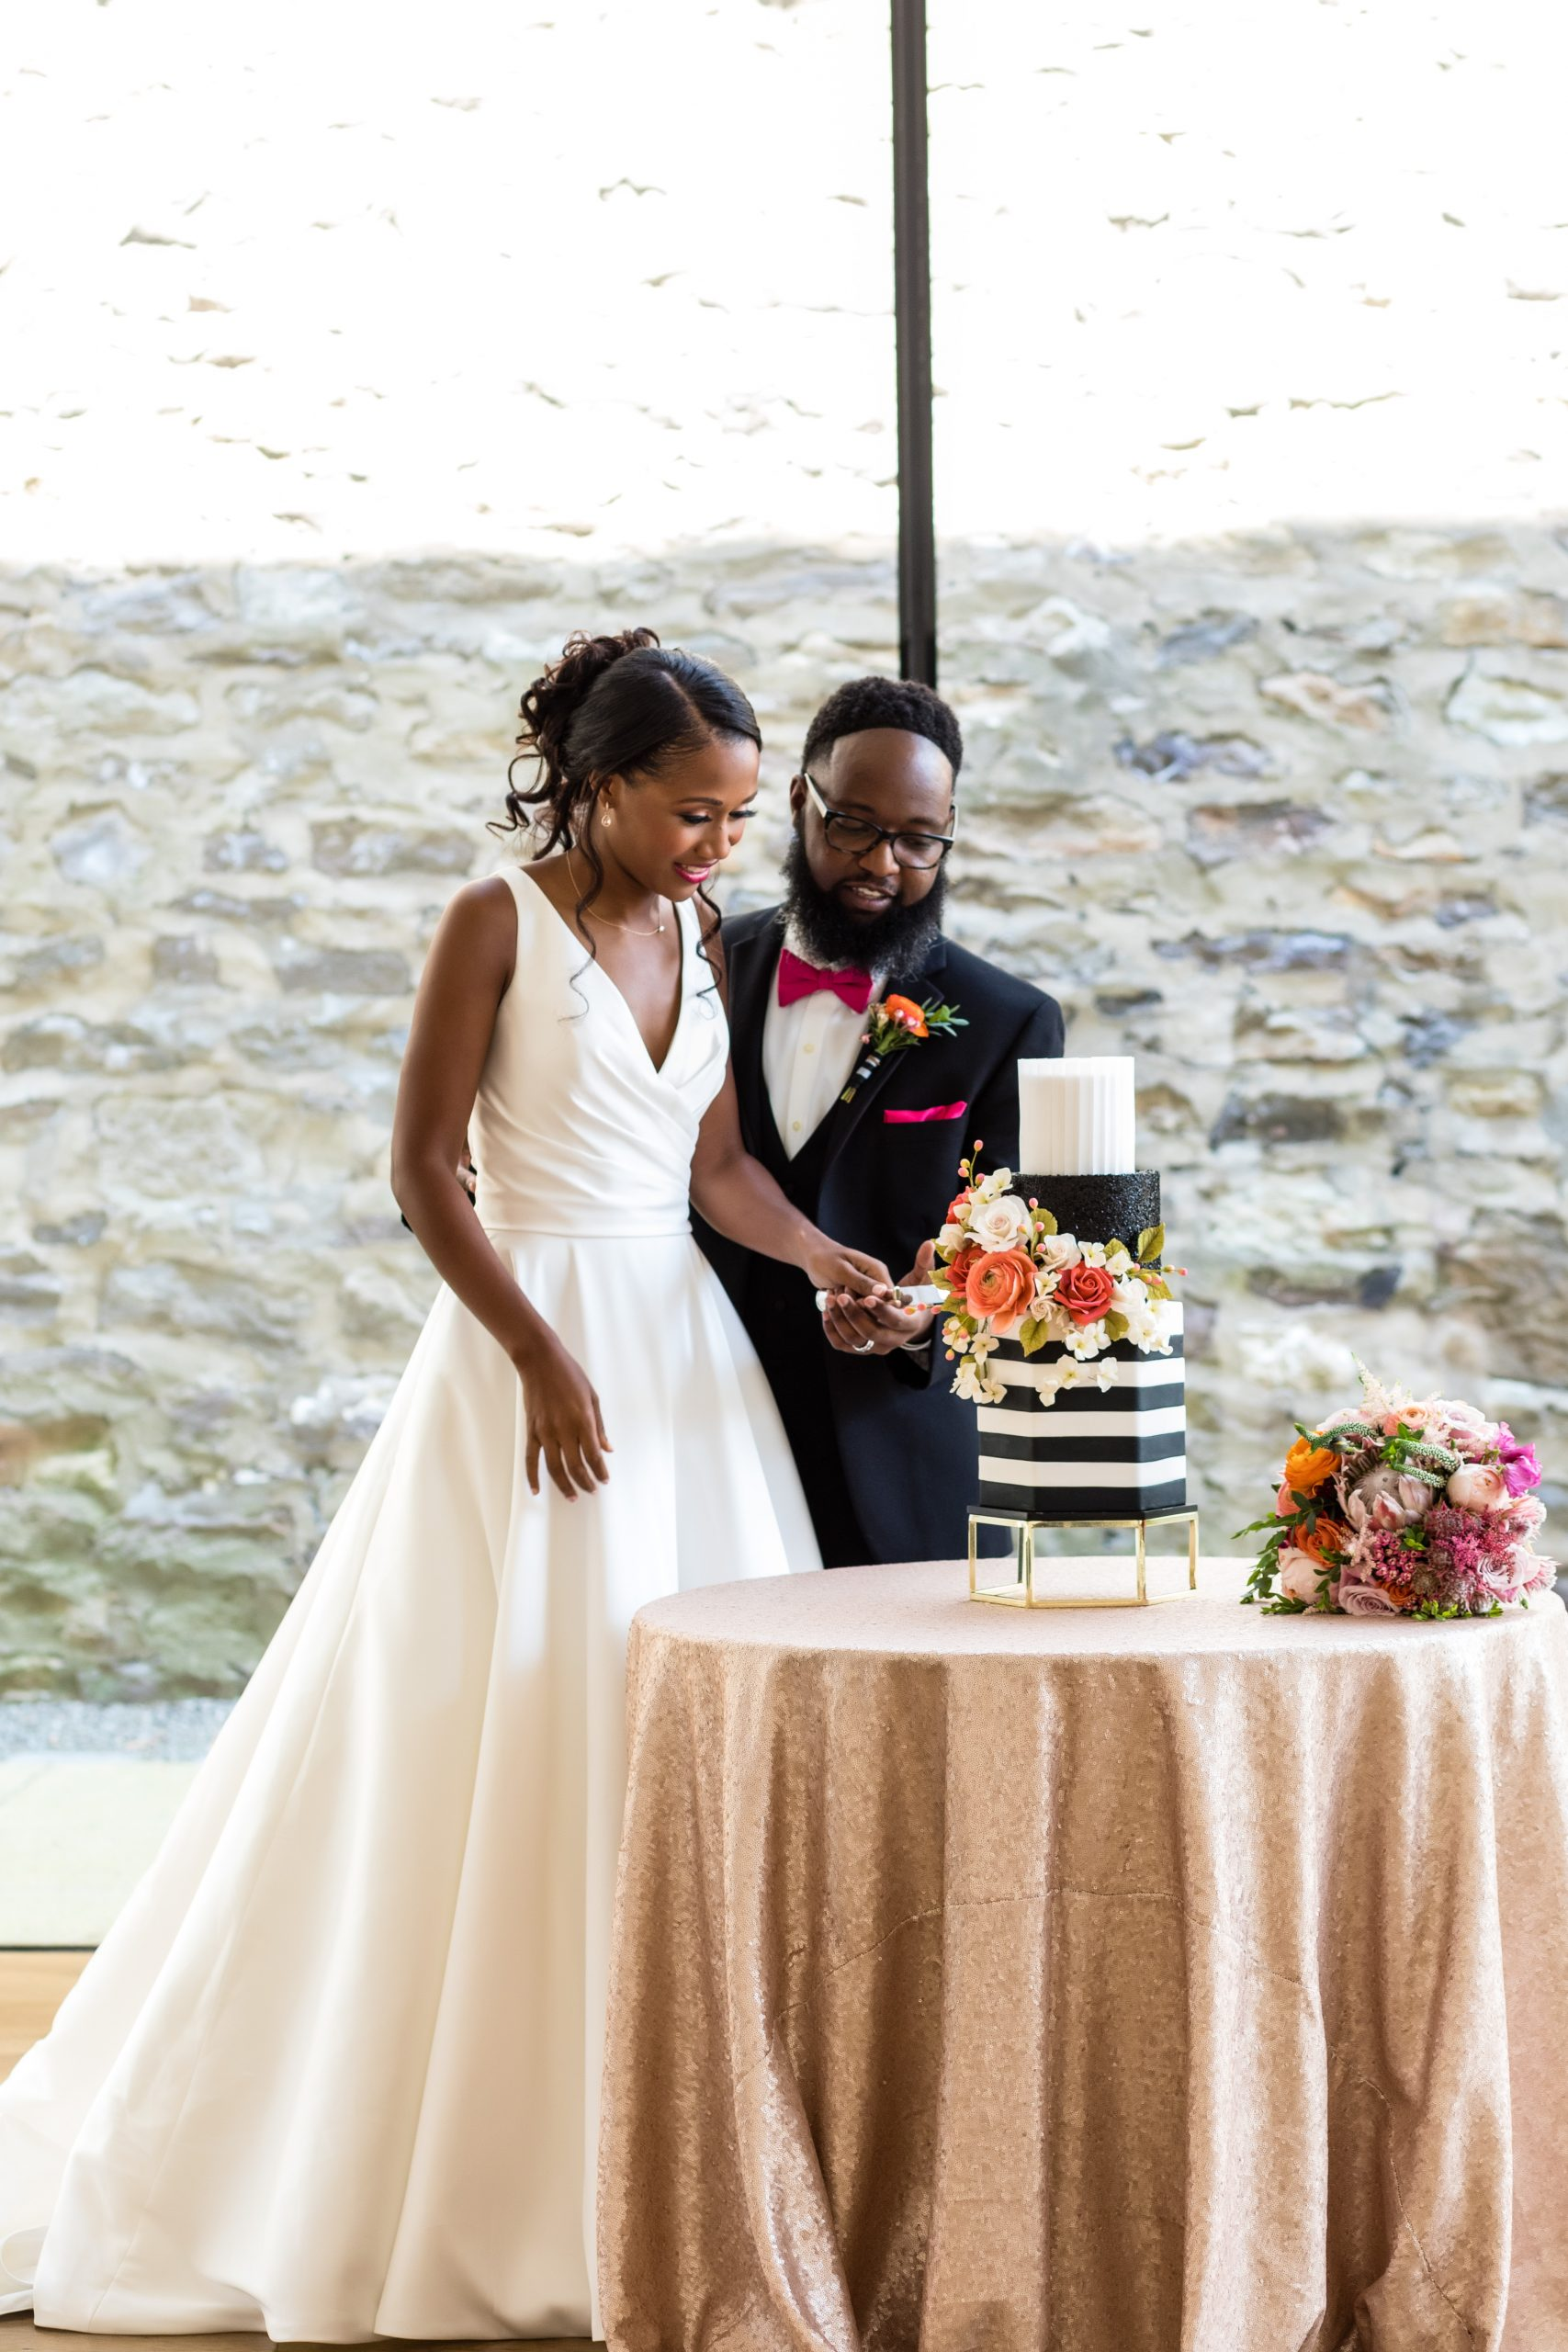 Cutting the cake at the Michener Museum styled urban contemporary shoot for Ashley Gerrity Photography this past Summer. Featured on Dream Weddings.